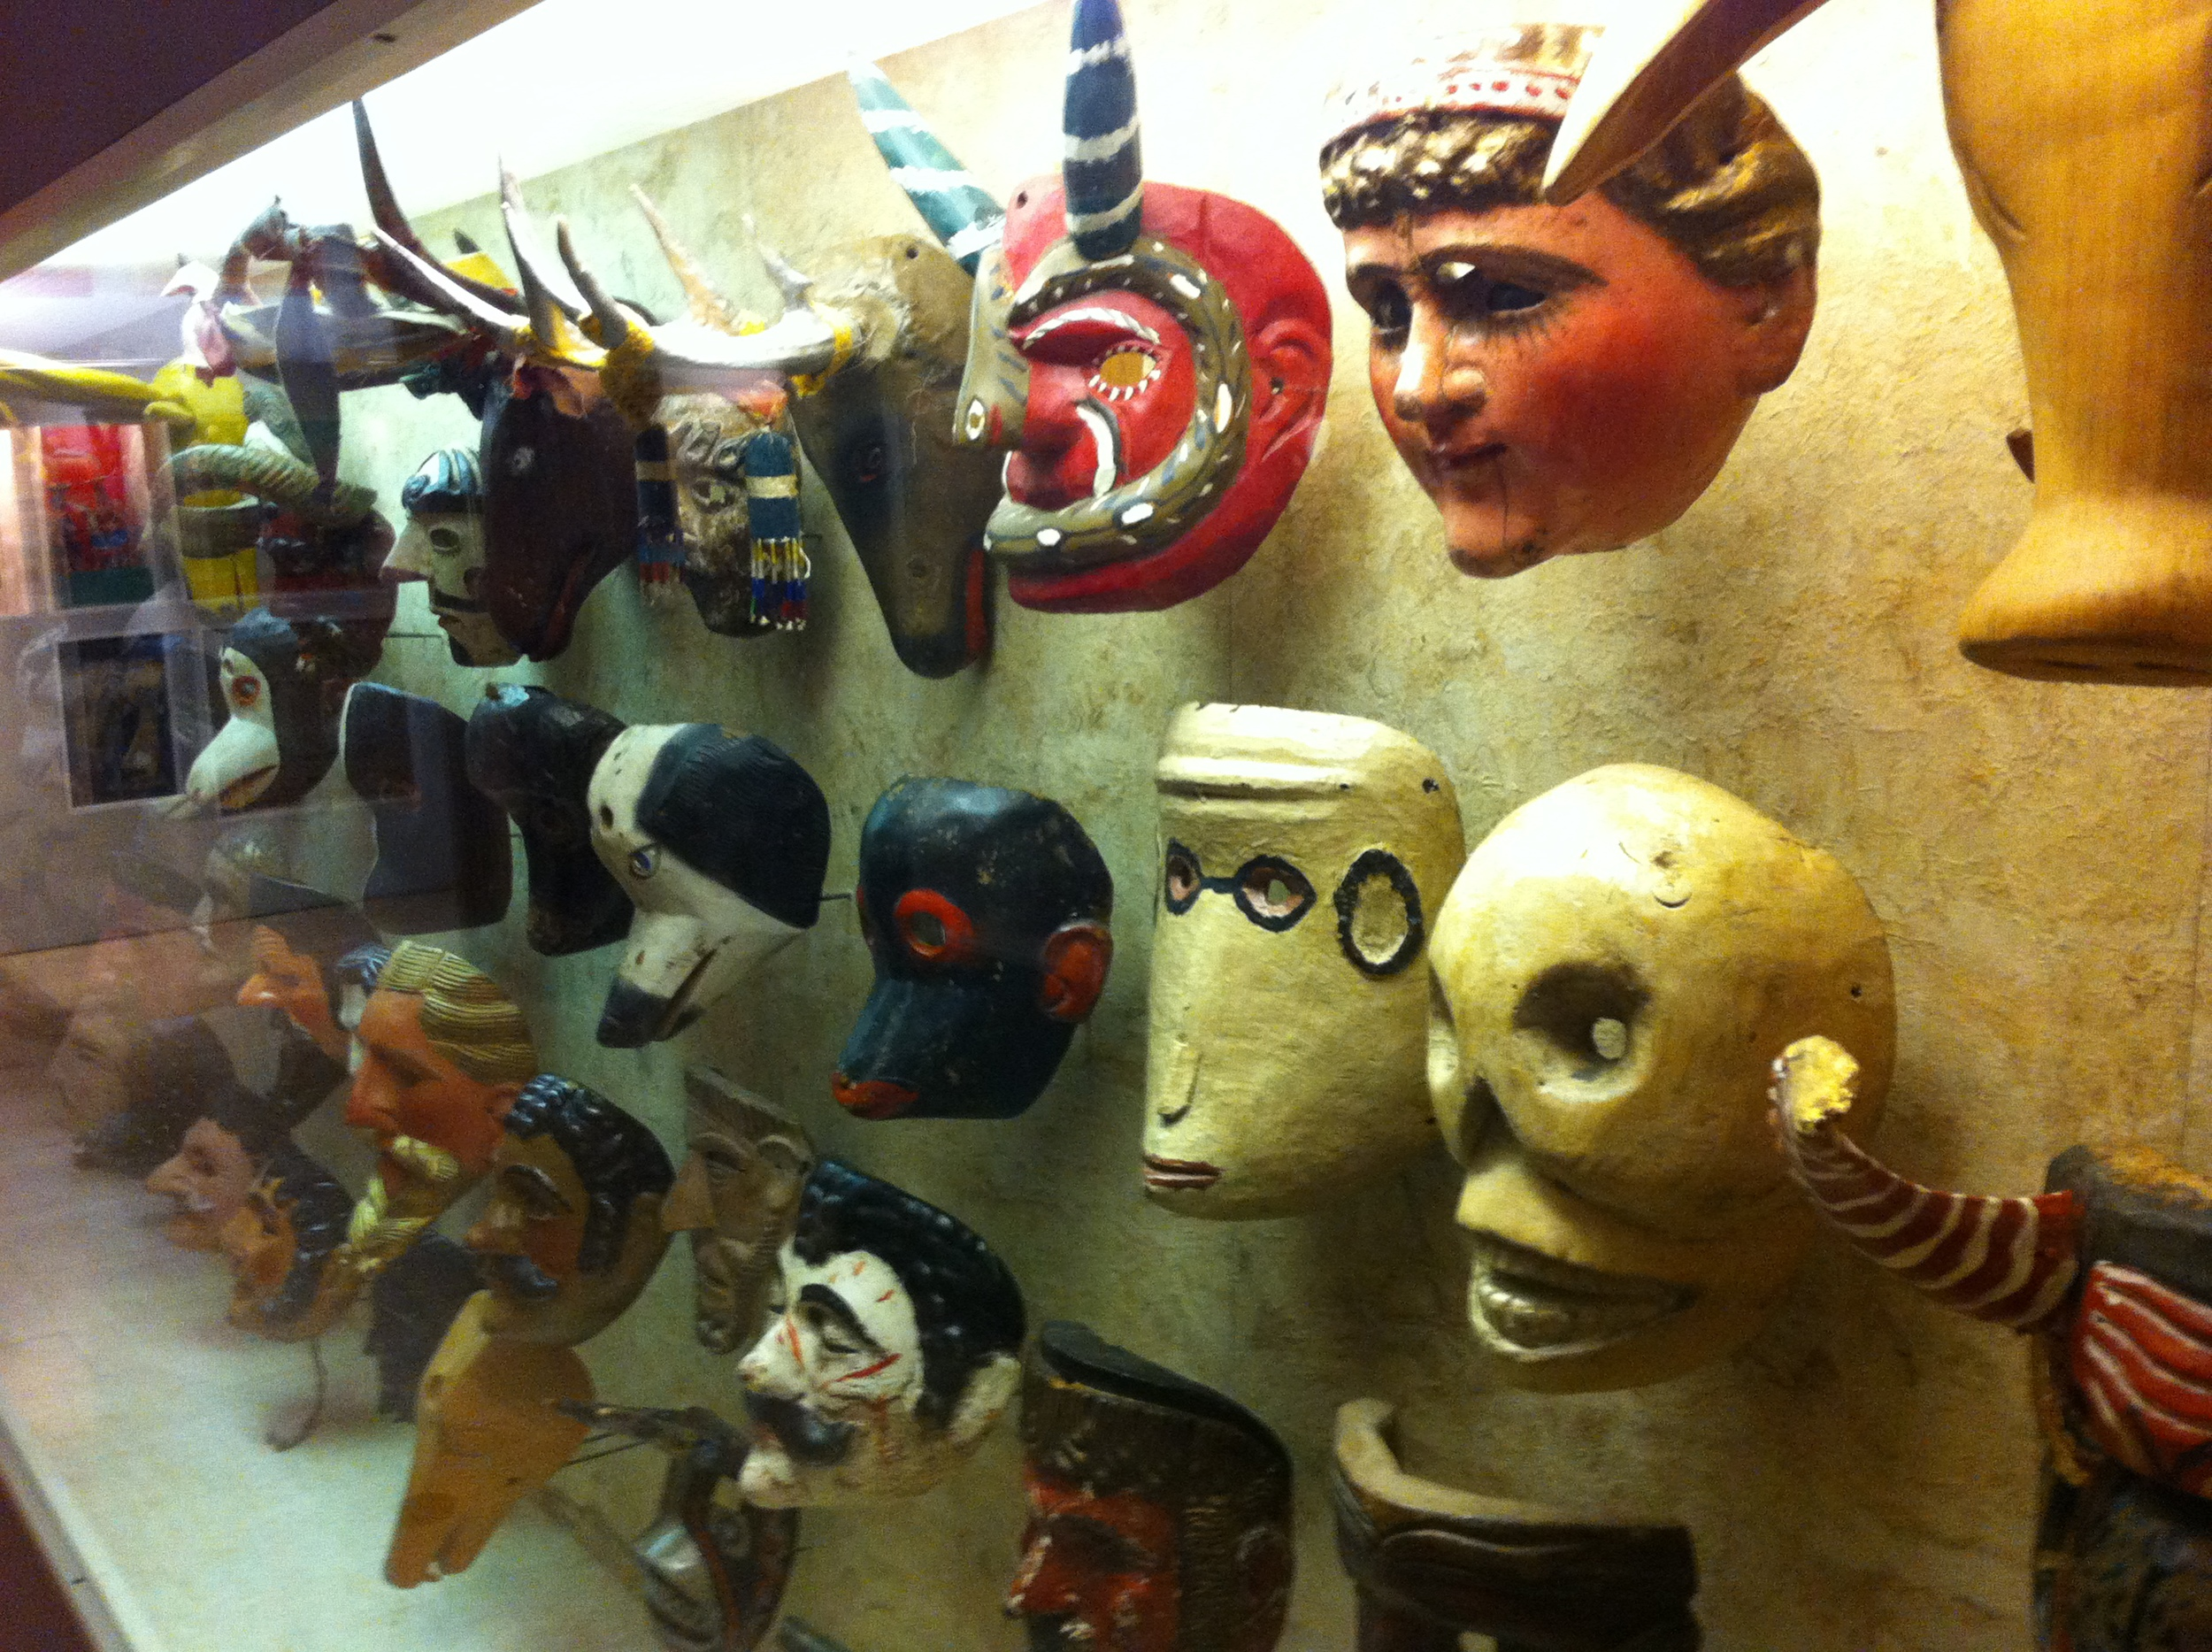 Just one of many displays of masks.